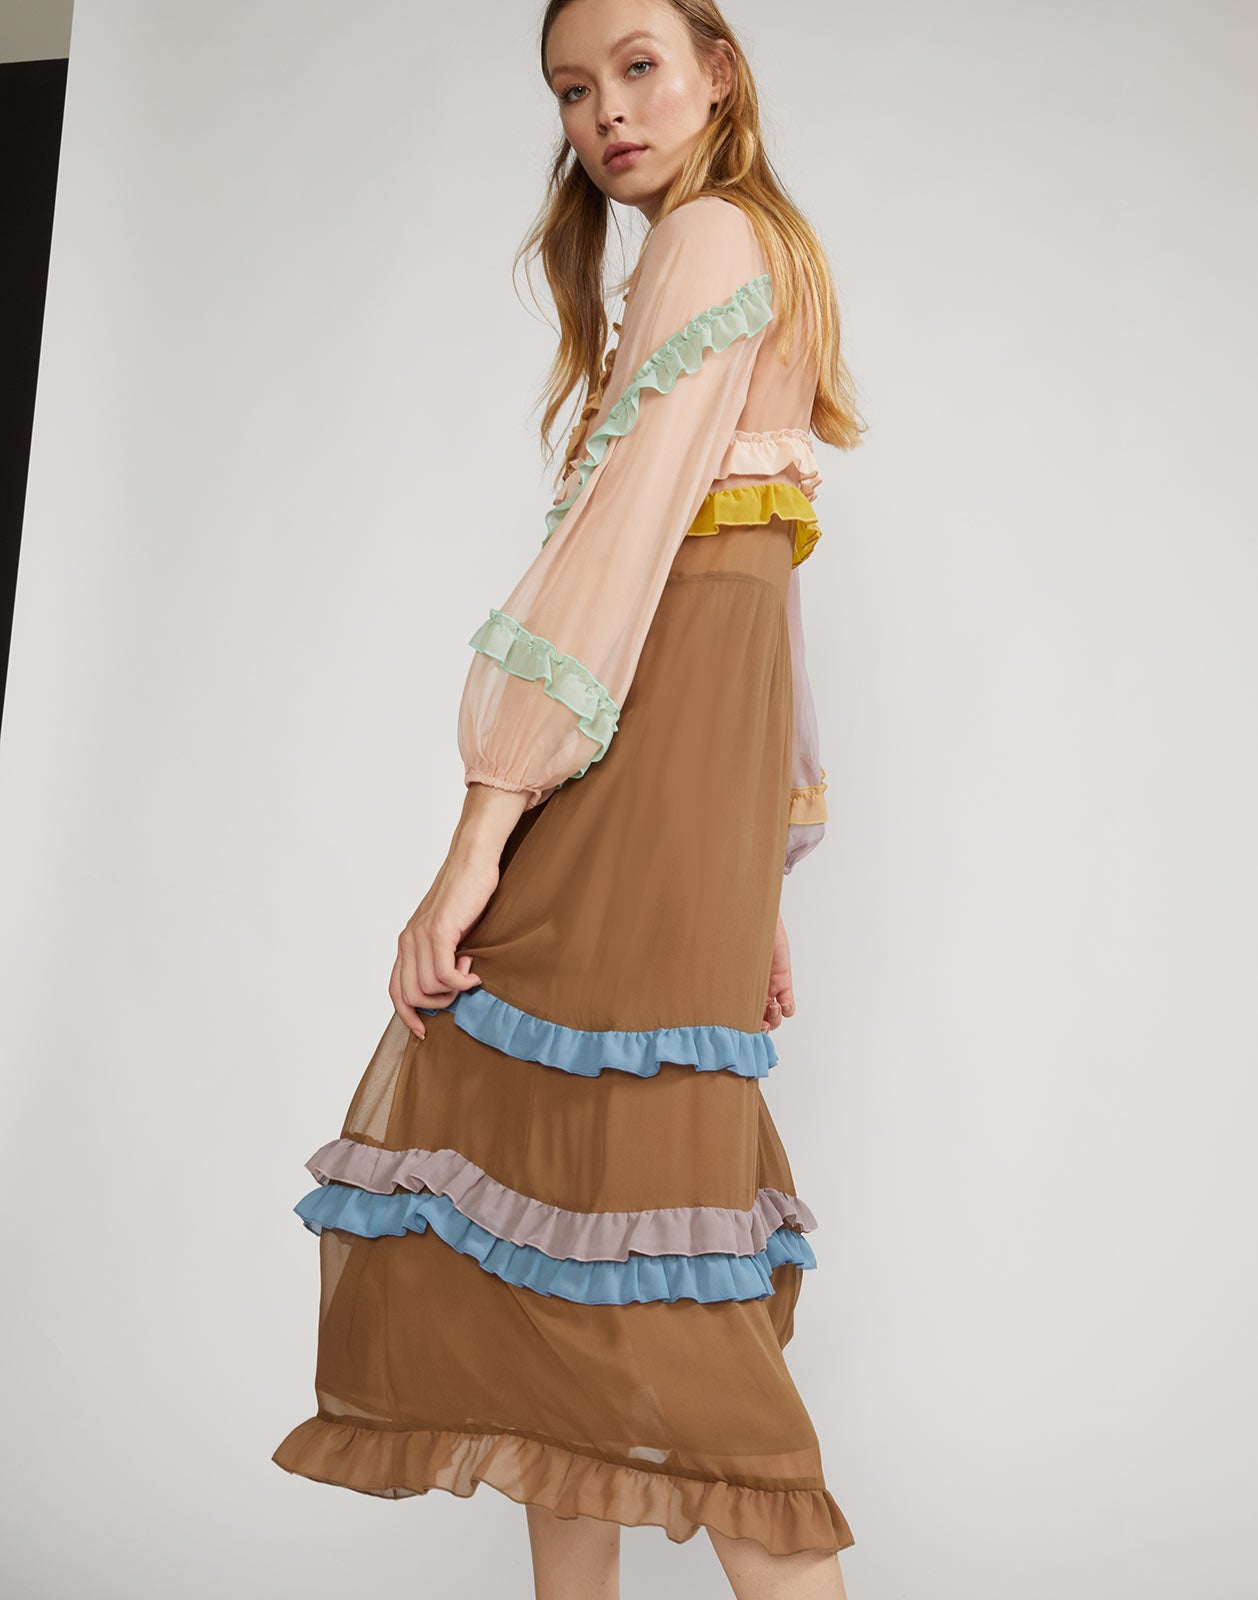 Alternate view of lined chiffon dress with sheer sleeves and multicolor mini ruffle details